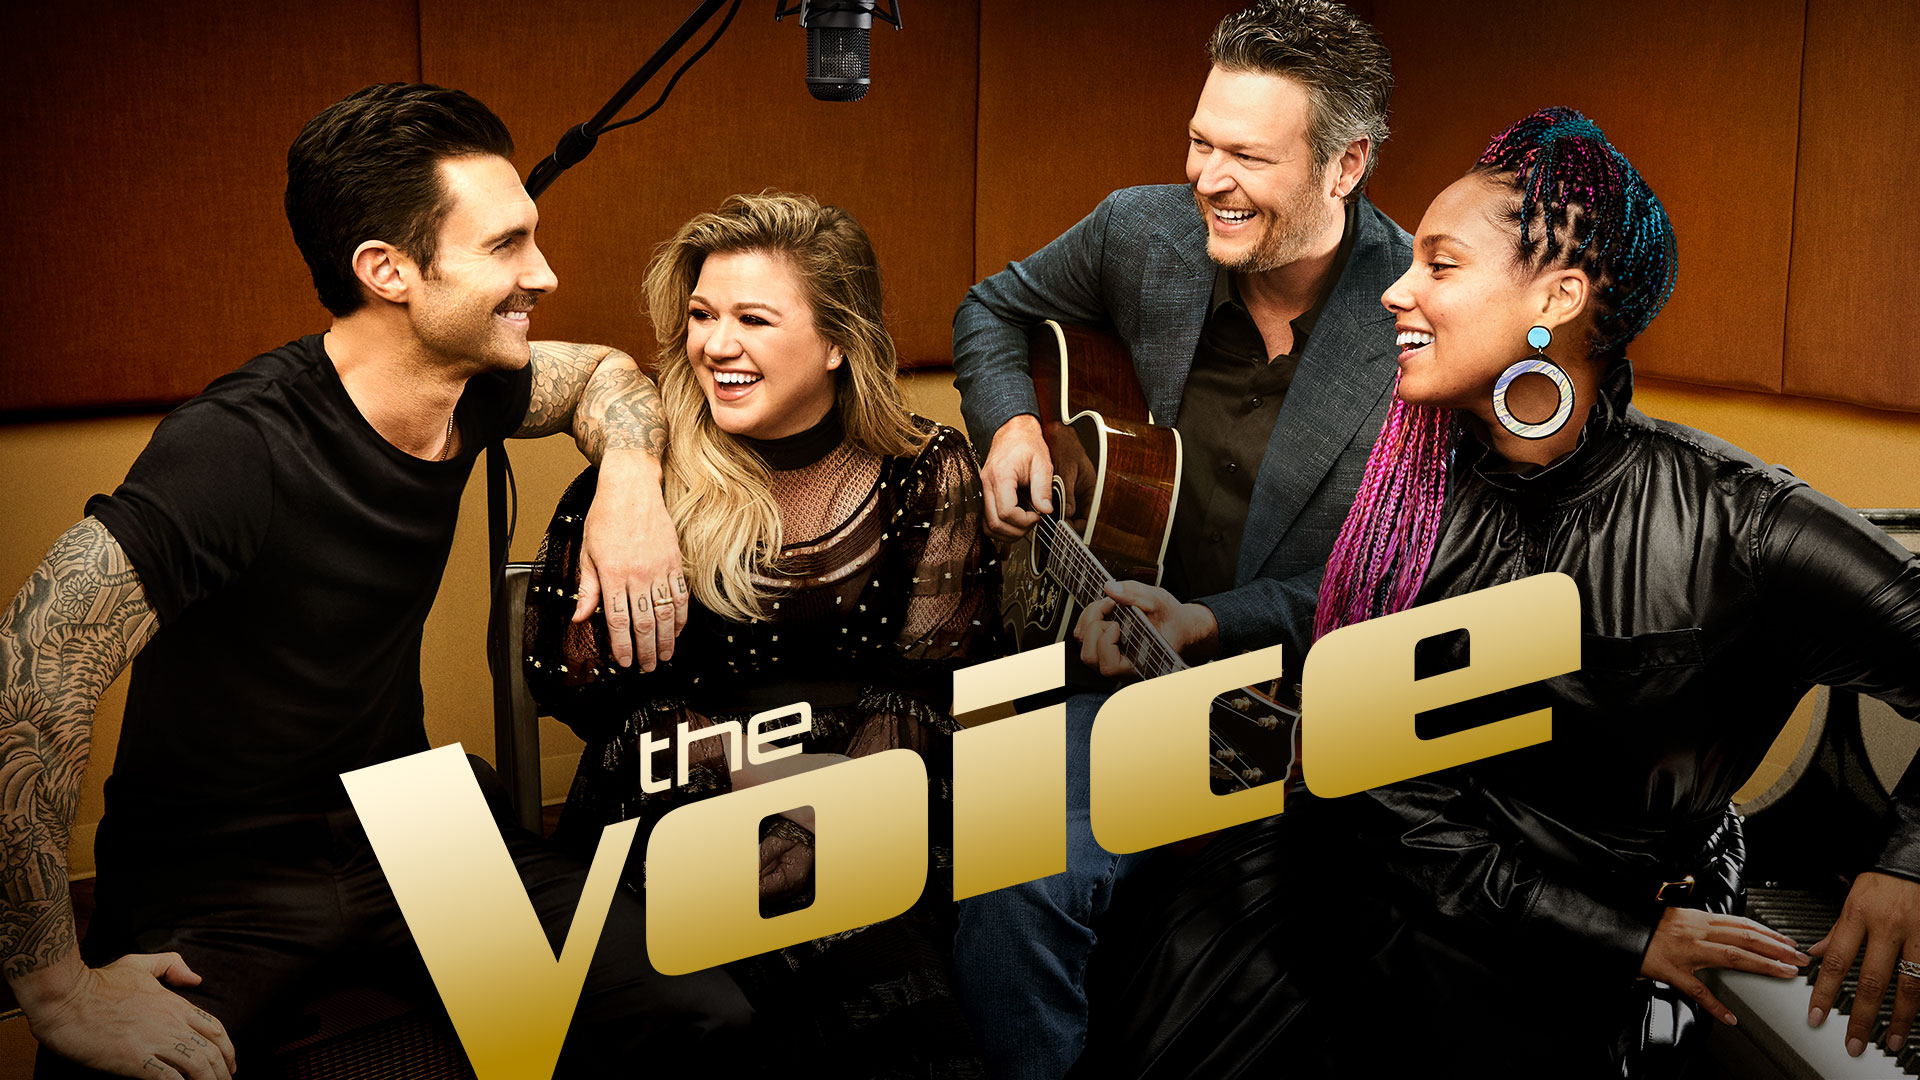 the voice - photo #15